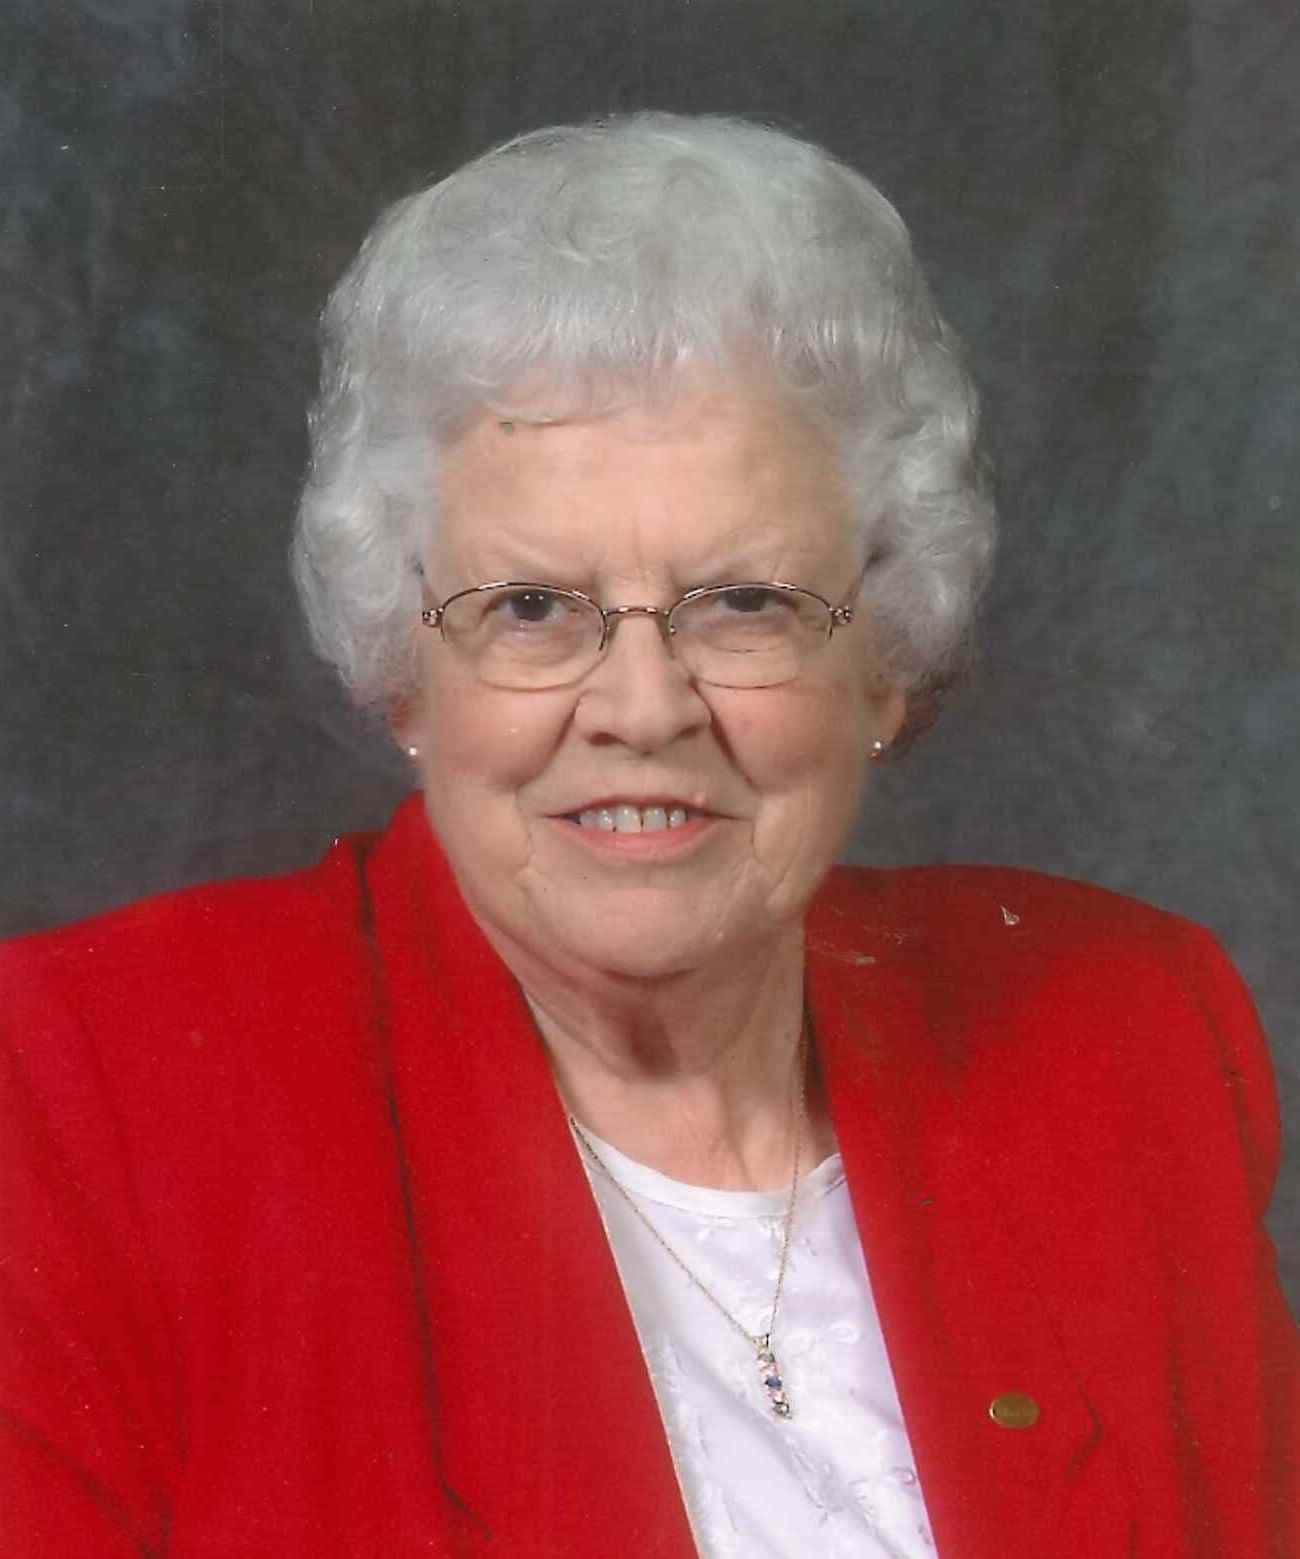 Services For 91 Year Old Rita McDermott Reis Of Perry, Formerly Of  Jefferson, Will Be Friday At 10 Am At The St. Joseph Catholic Church In  Jefferson With ...